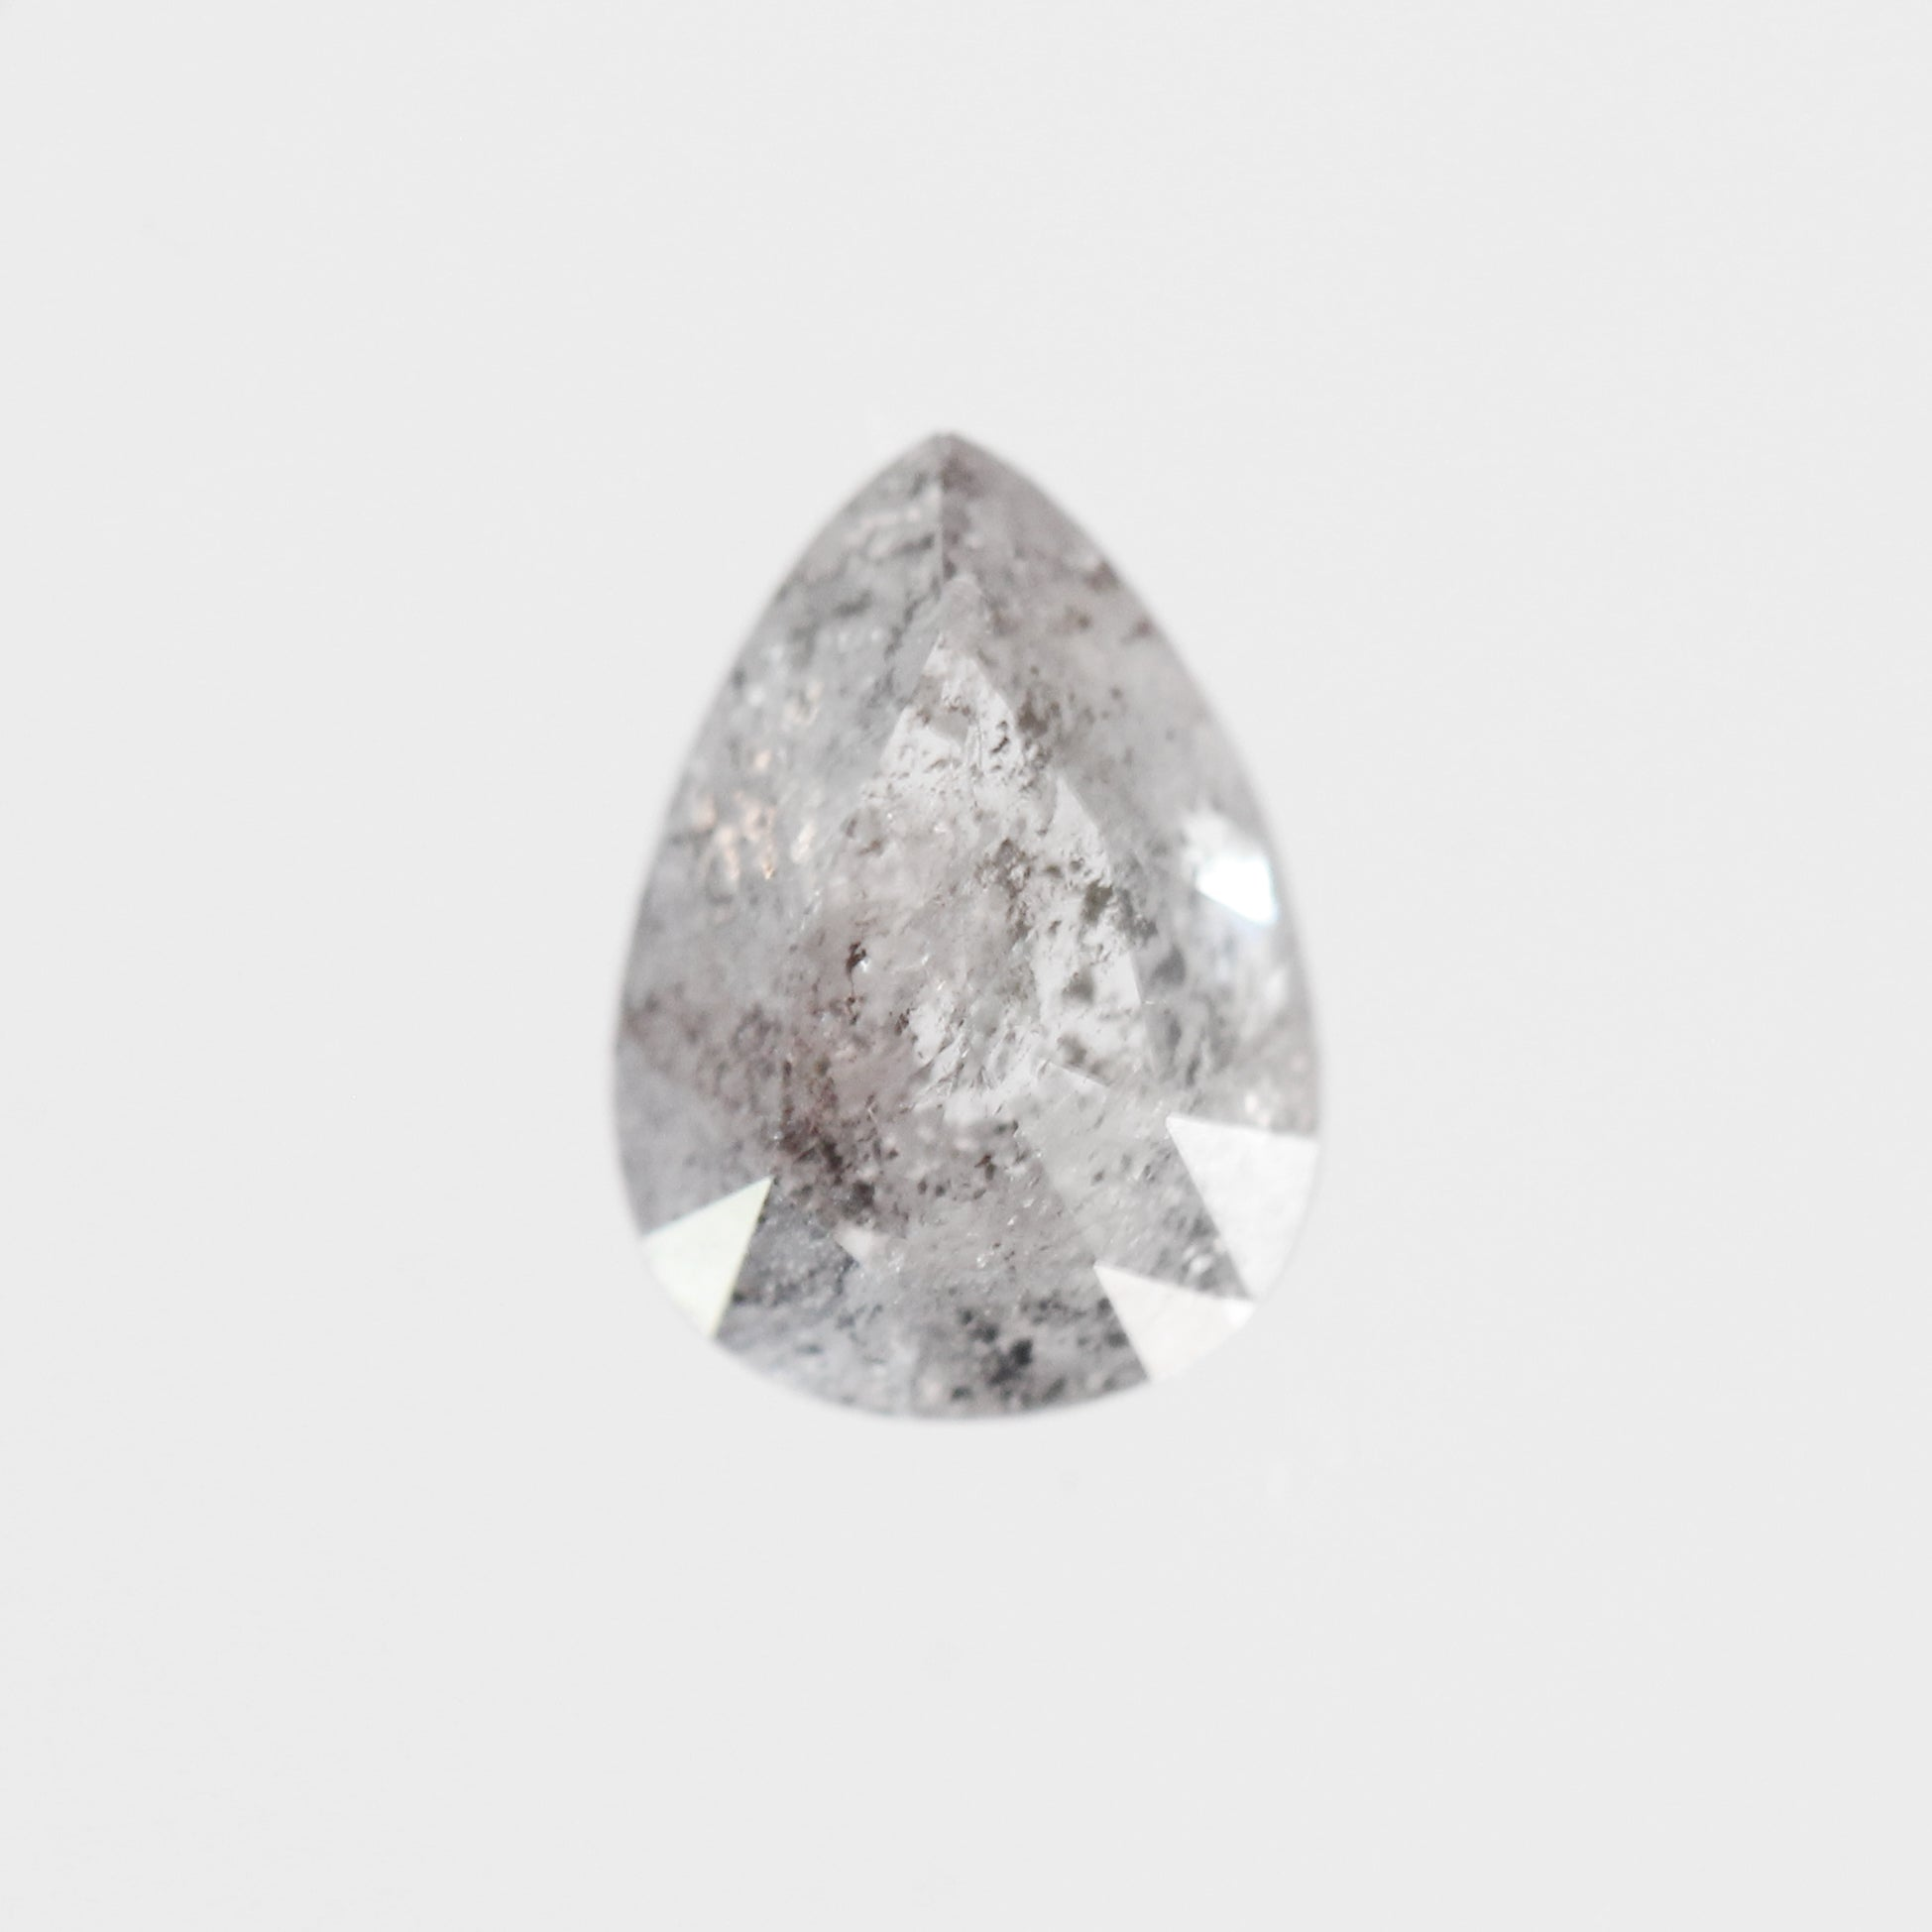 1.20 Carat Pear Celestial Diamond® for Custom Work - Inventory Code GP120 - Celestial Diamonds ® by Midwinter Co.